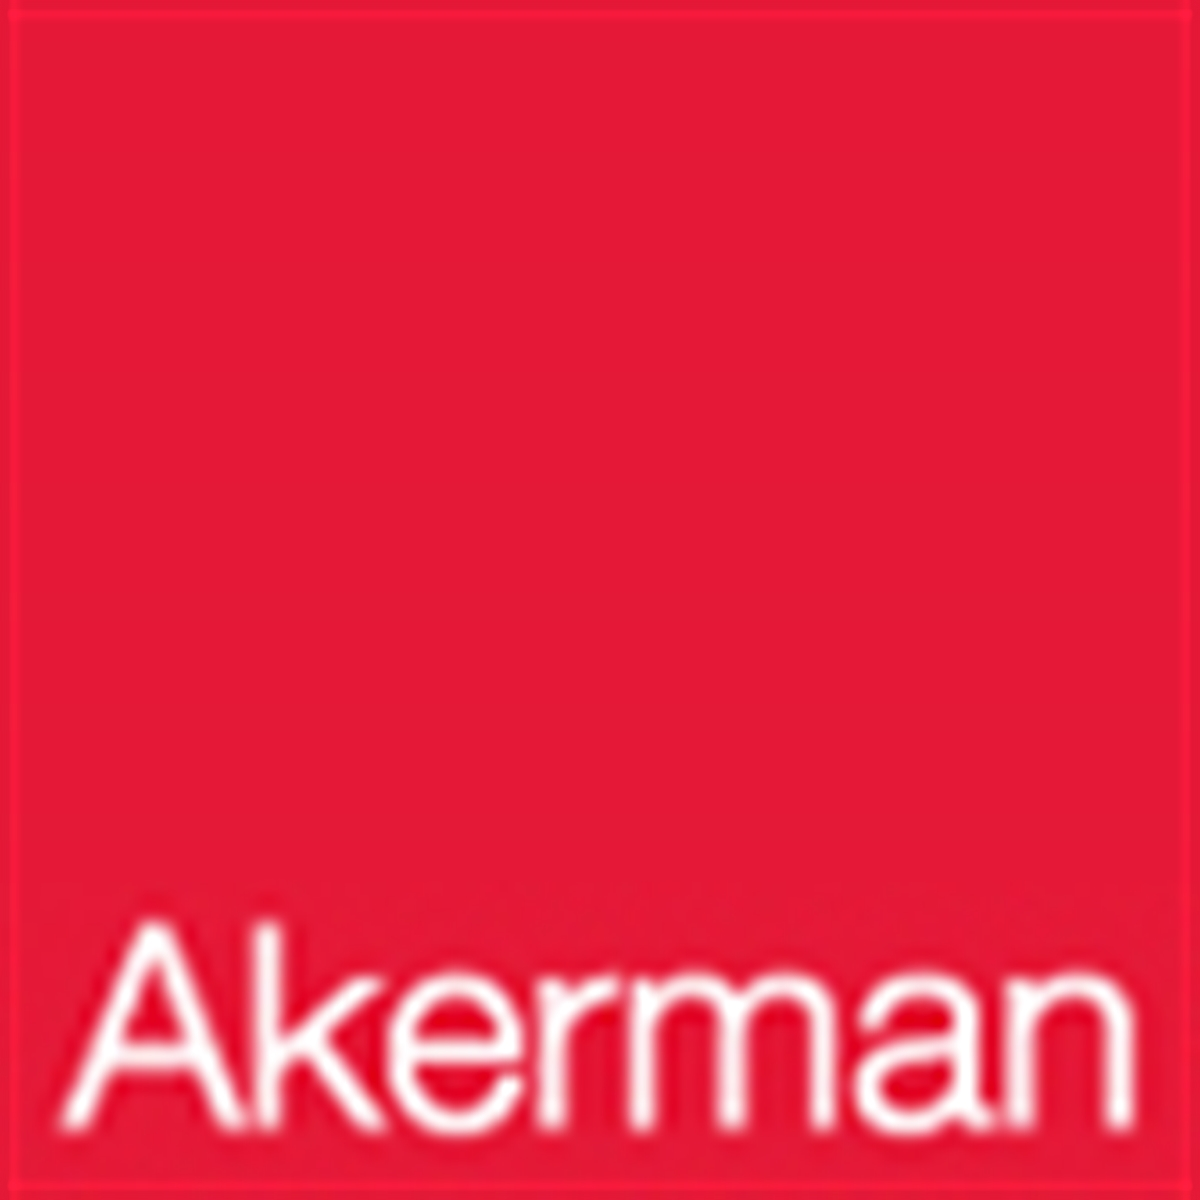 Moving Workplace Injury and Safety Reporting Into the Digital Age: Electronic Reporting Requirements For OSHA Data  | Akerman LLP - HR Defense - JDSupra